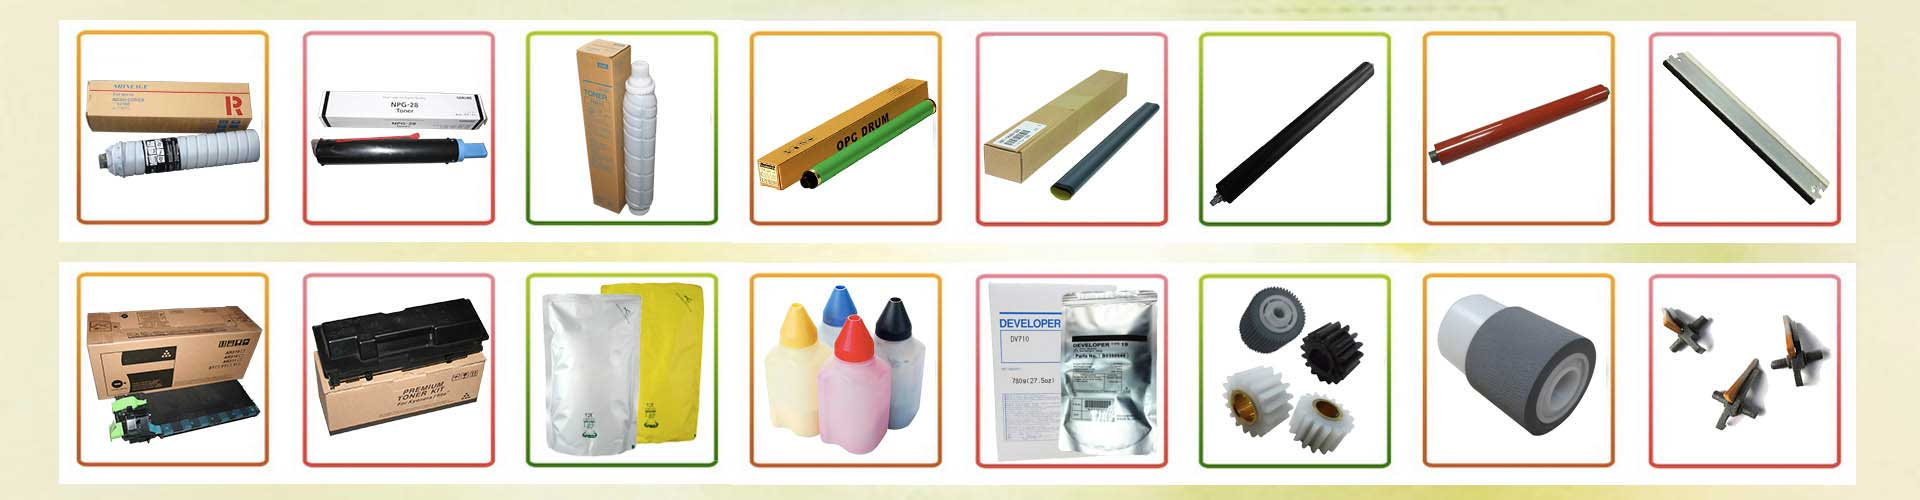 toner cartridge, spare part